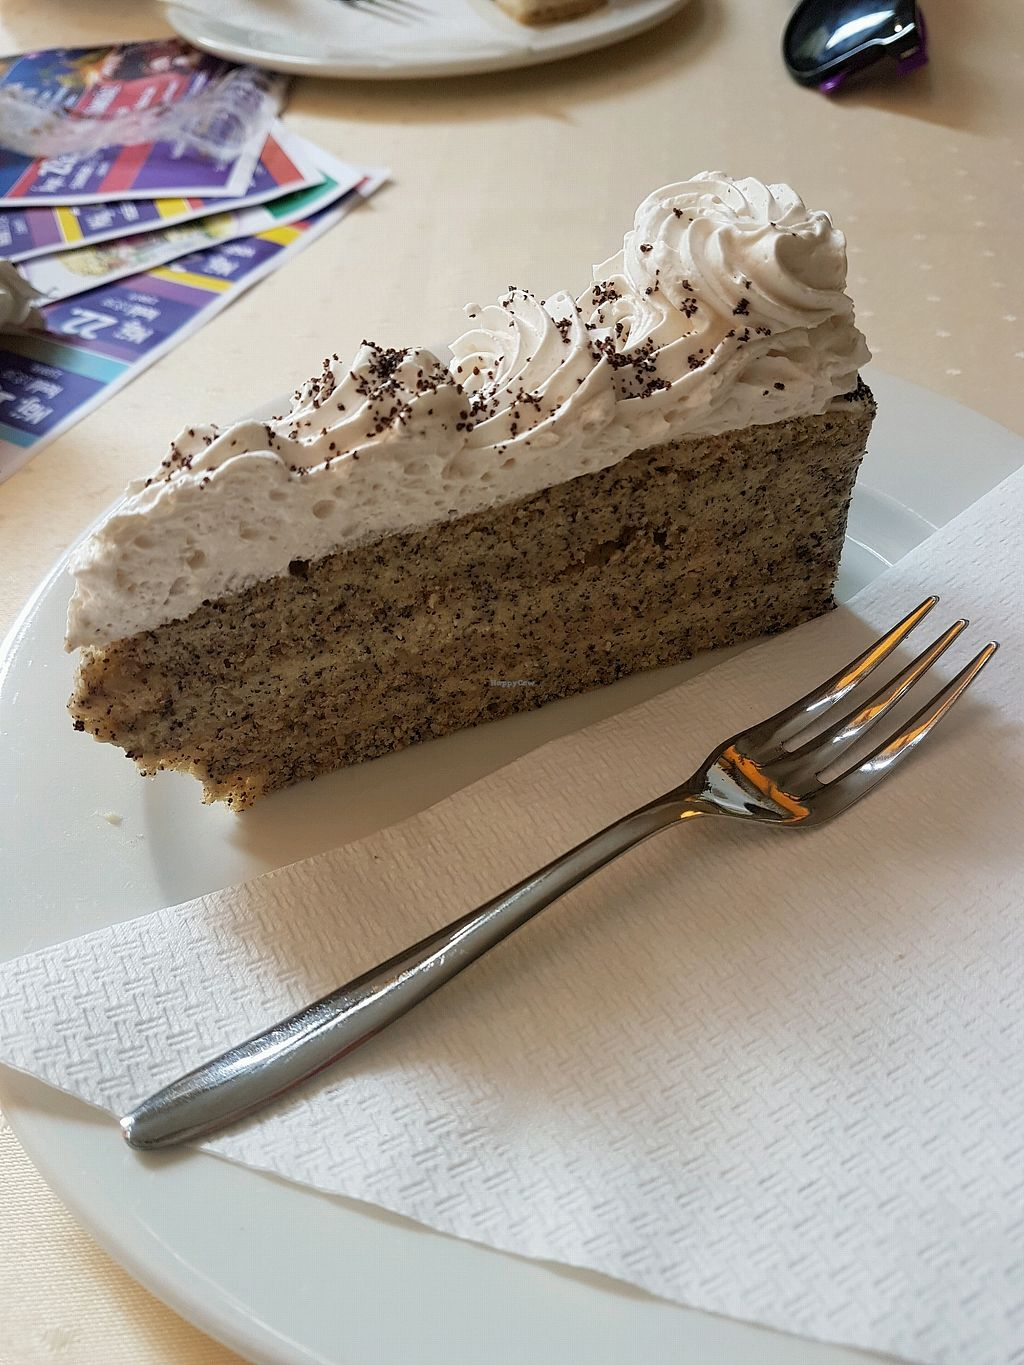 """Photo of Napfenyes Restaurant and Pastry Shop  by <a href=""""/members/profile/LauraBanana"""">LauraBanana</a> <br/>poppyseed cake!  <br/> April 28, 2018  - <a href='/contact/abuse/image/18107/392053'>Report</a>"""